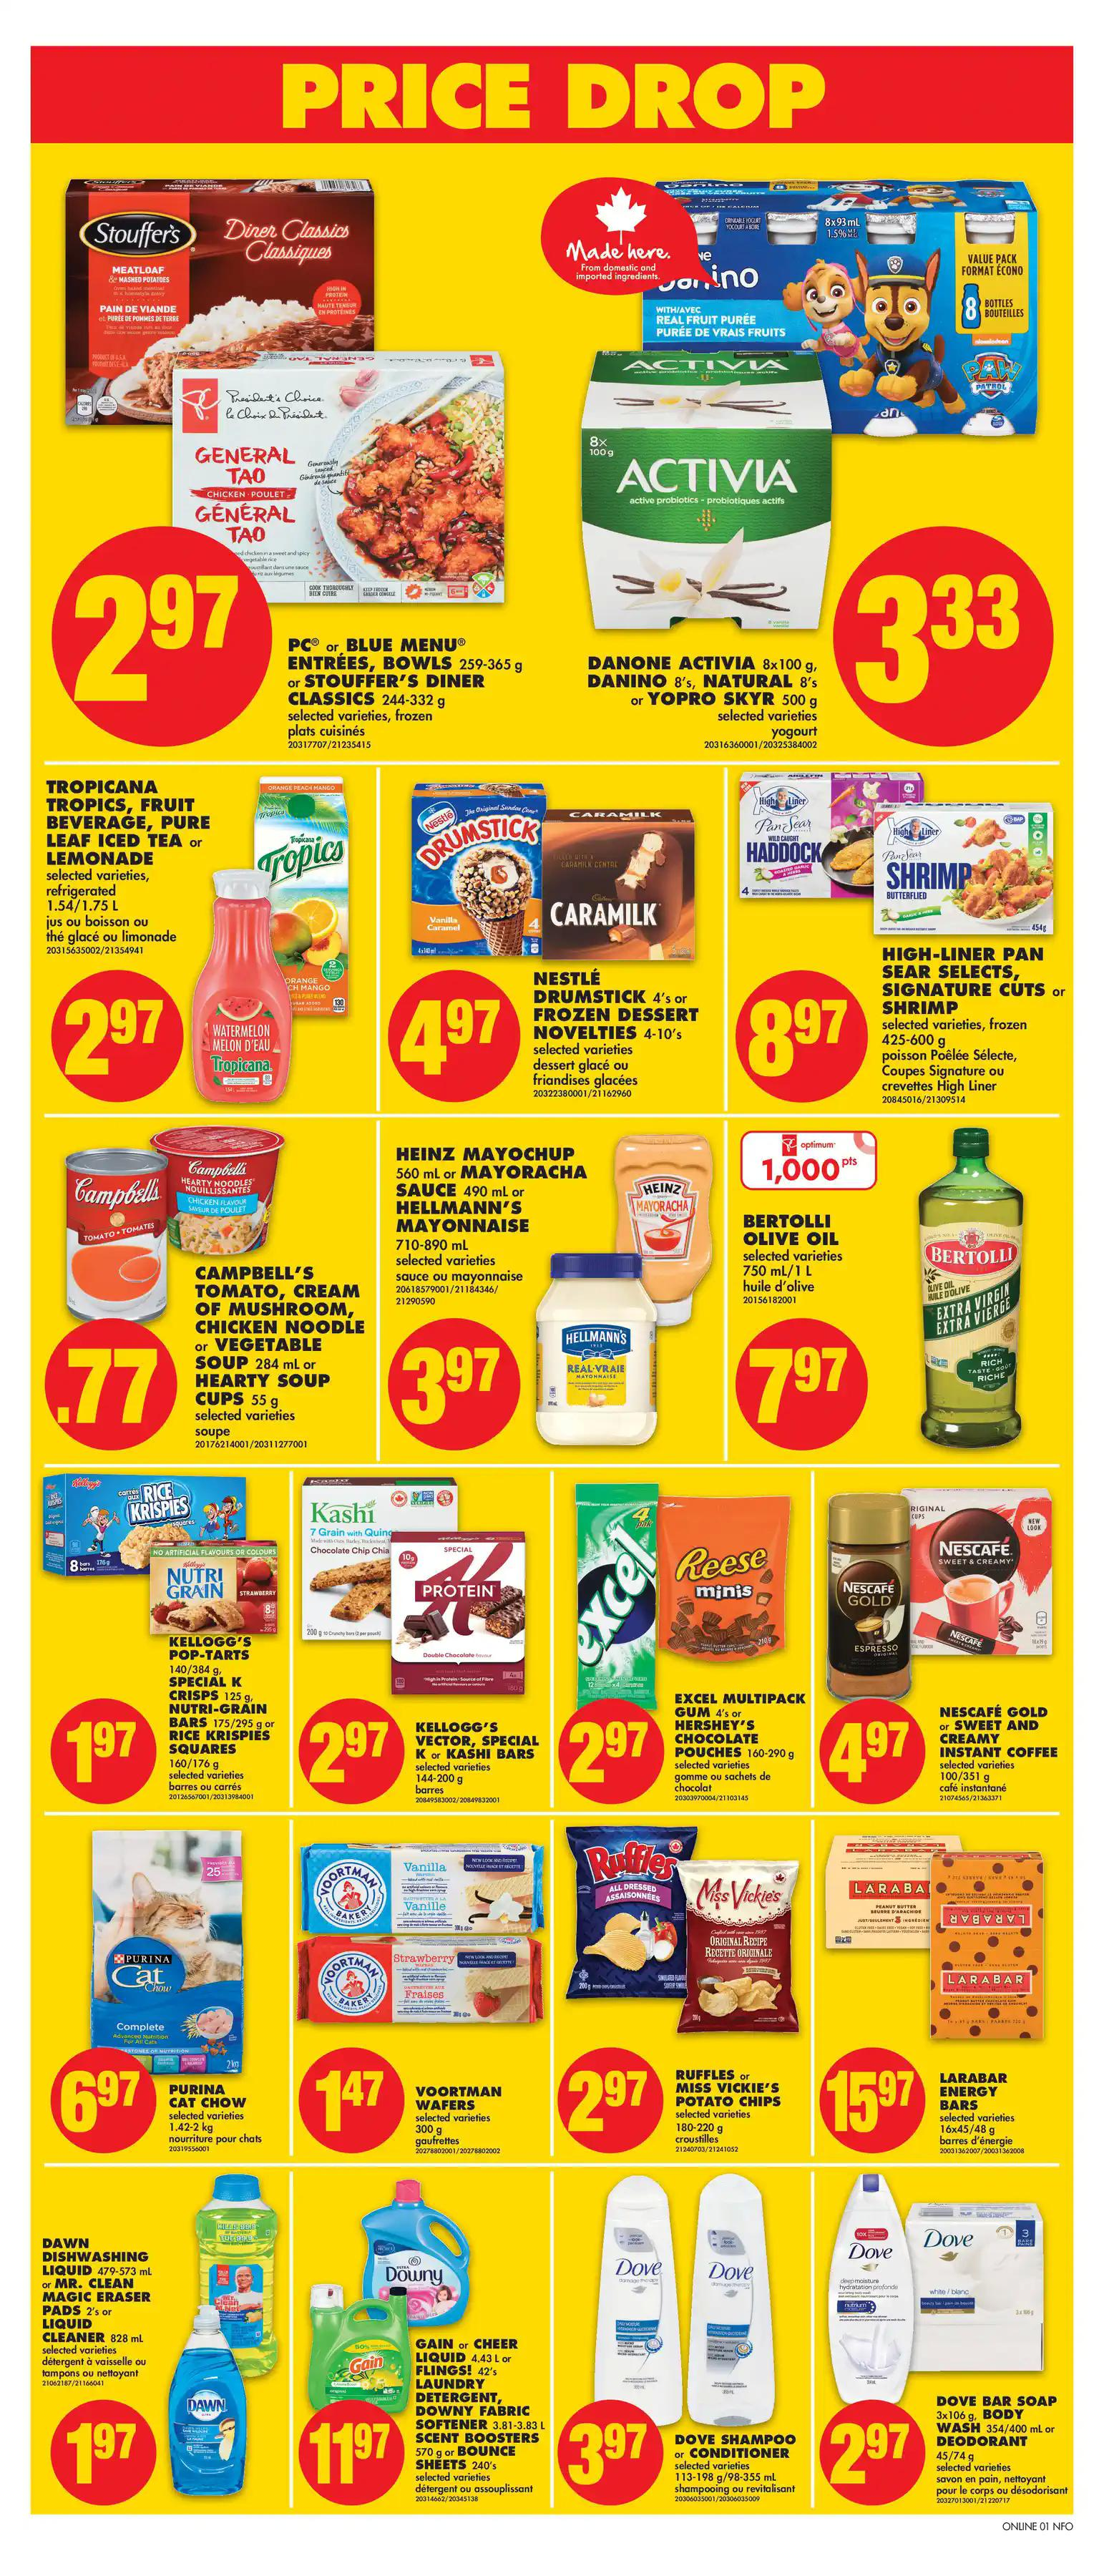 No Frills - Weekly Flyer Specials - Page 6